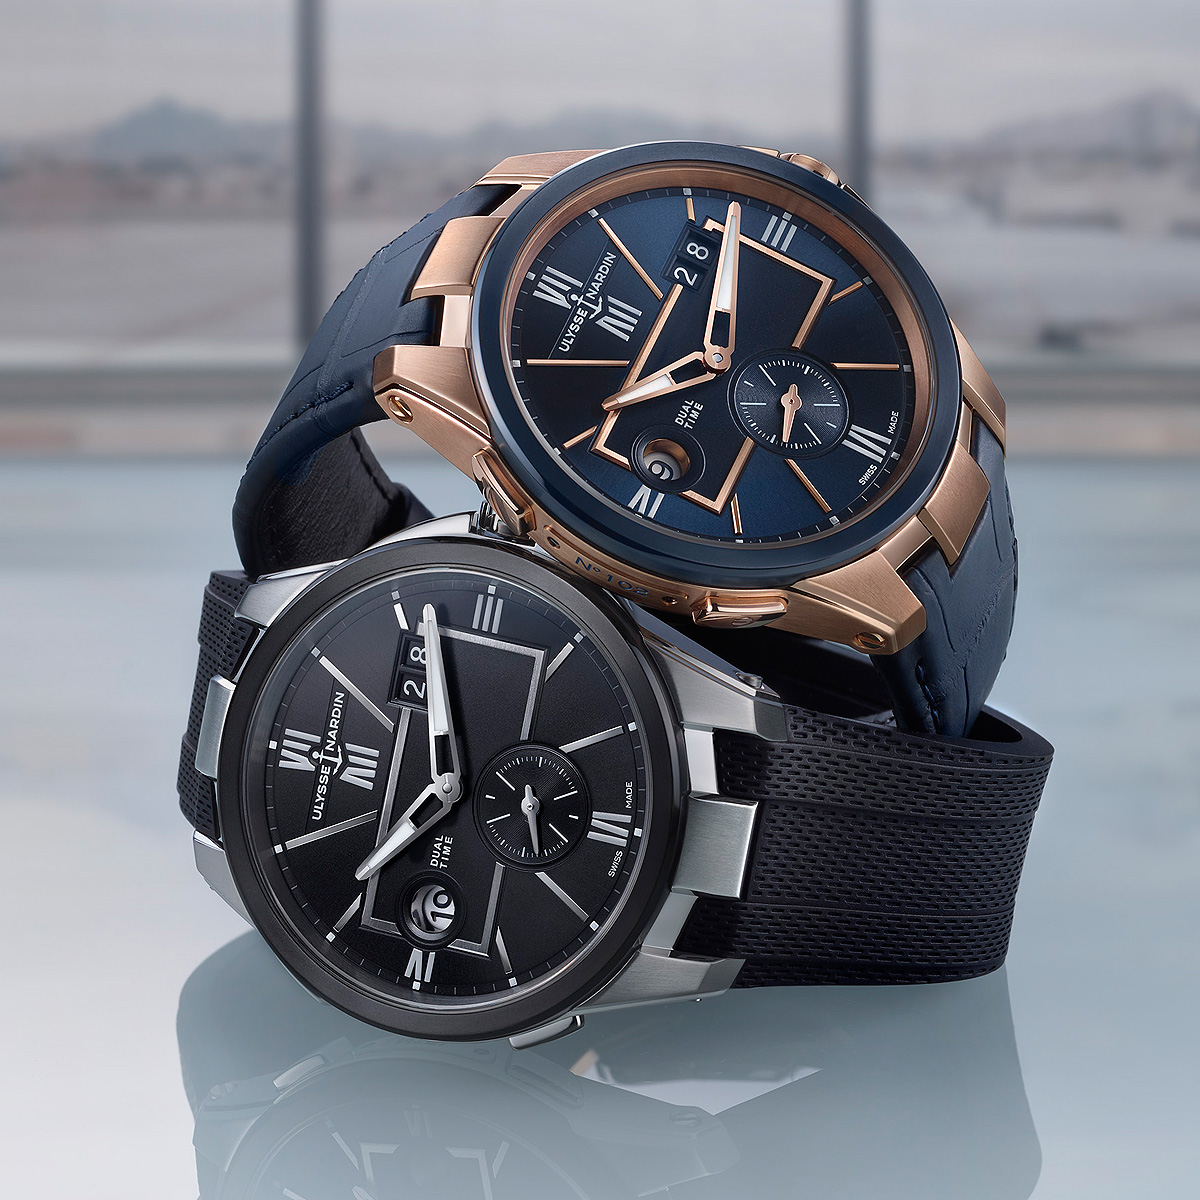 Traveler's Upgrade: Ulysse Nardin Introduces Reworked Dual Time Models | WatchTime - USA's No.1 Watch Magazine